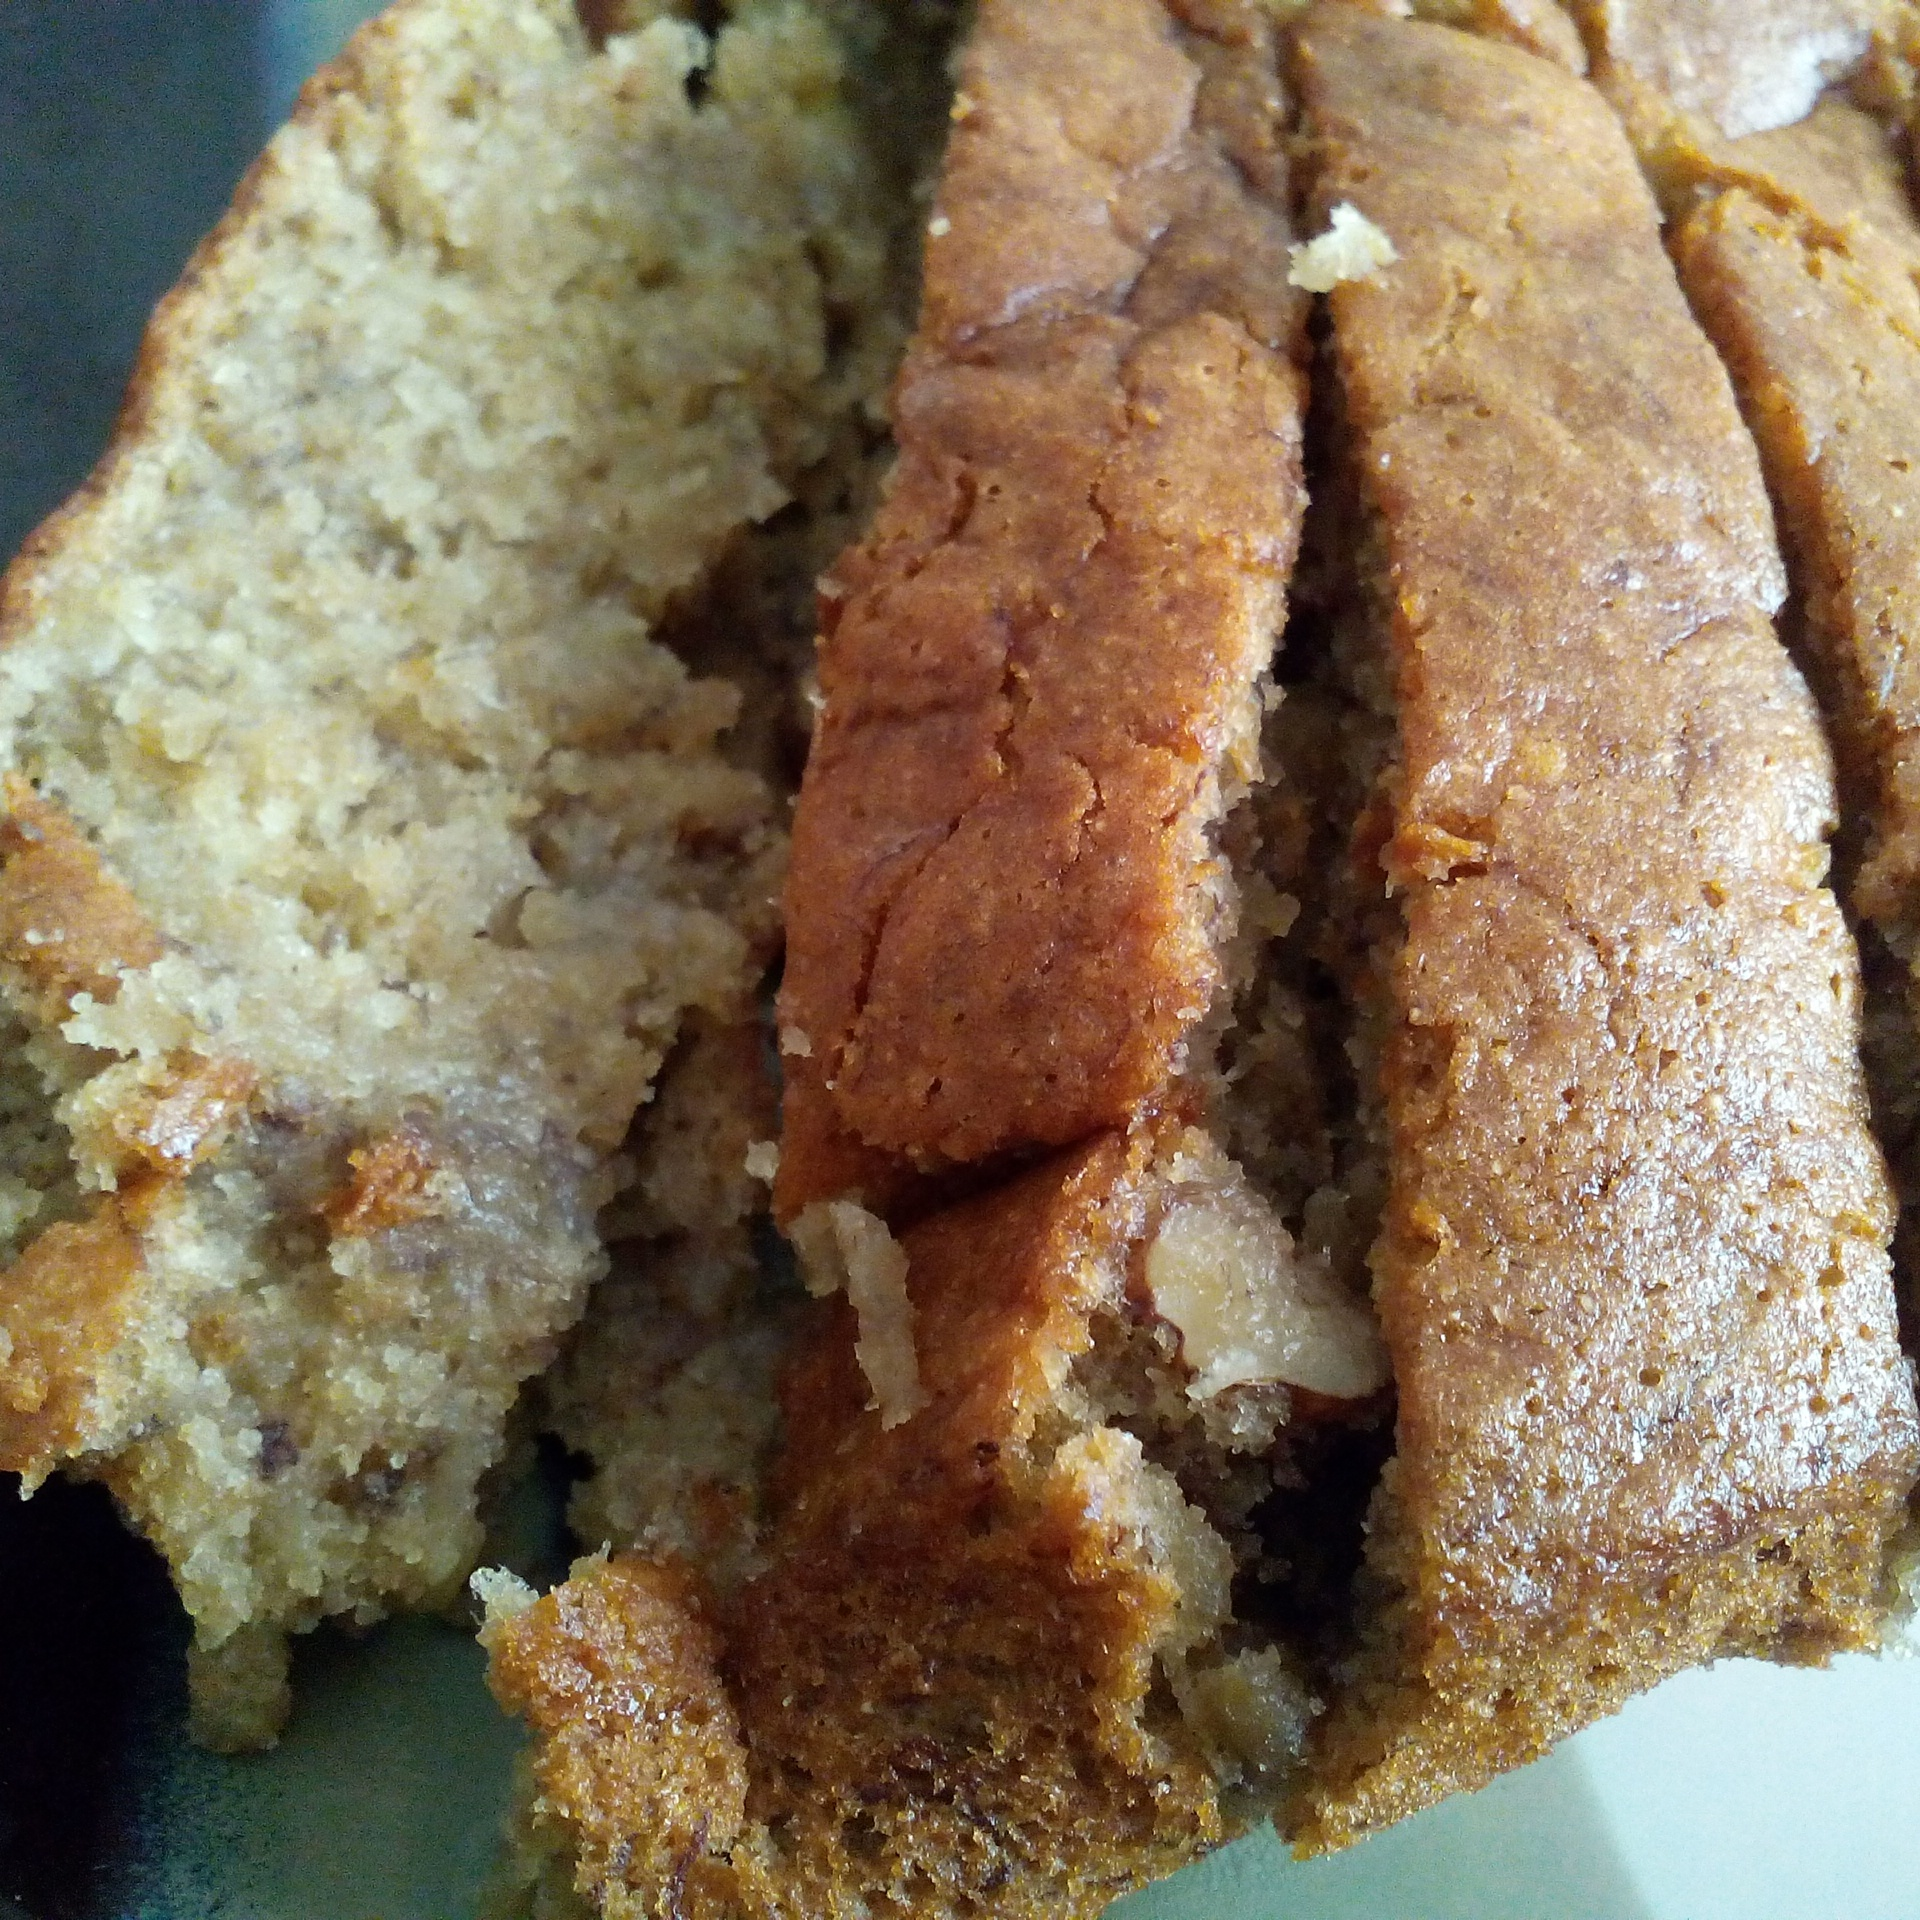 Eggless Banana-Walnut Bread